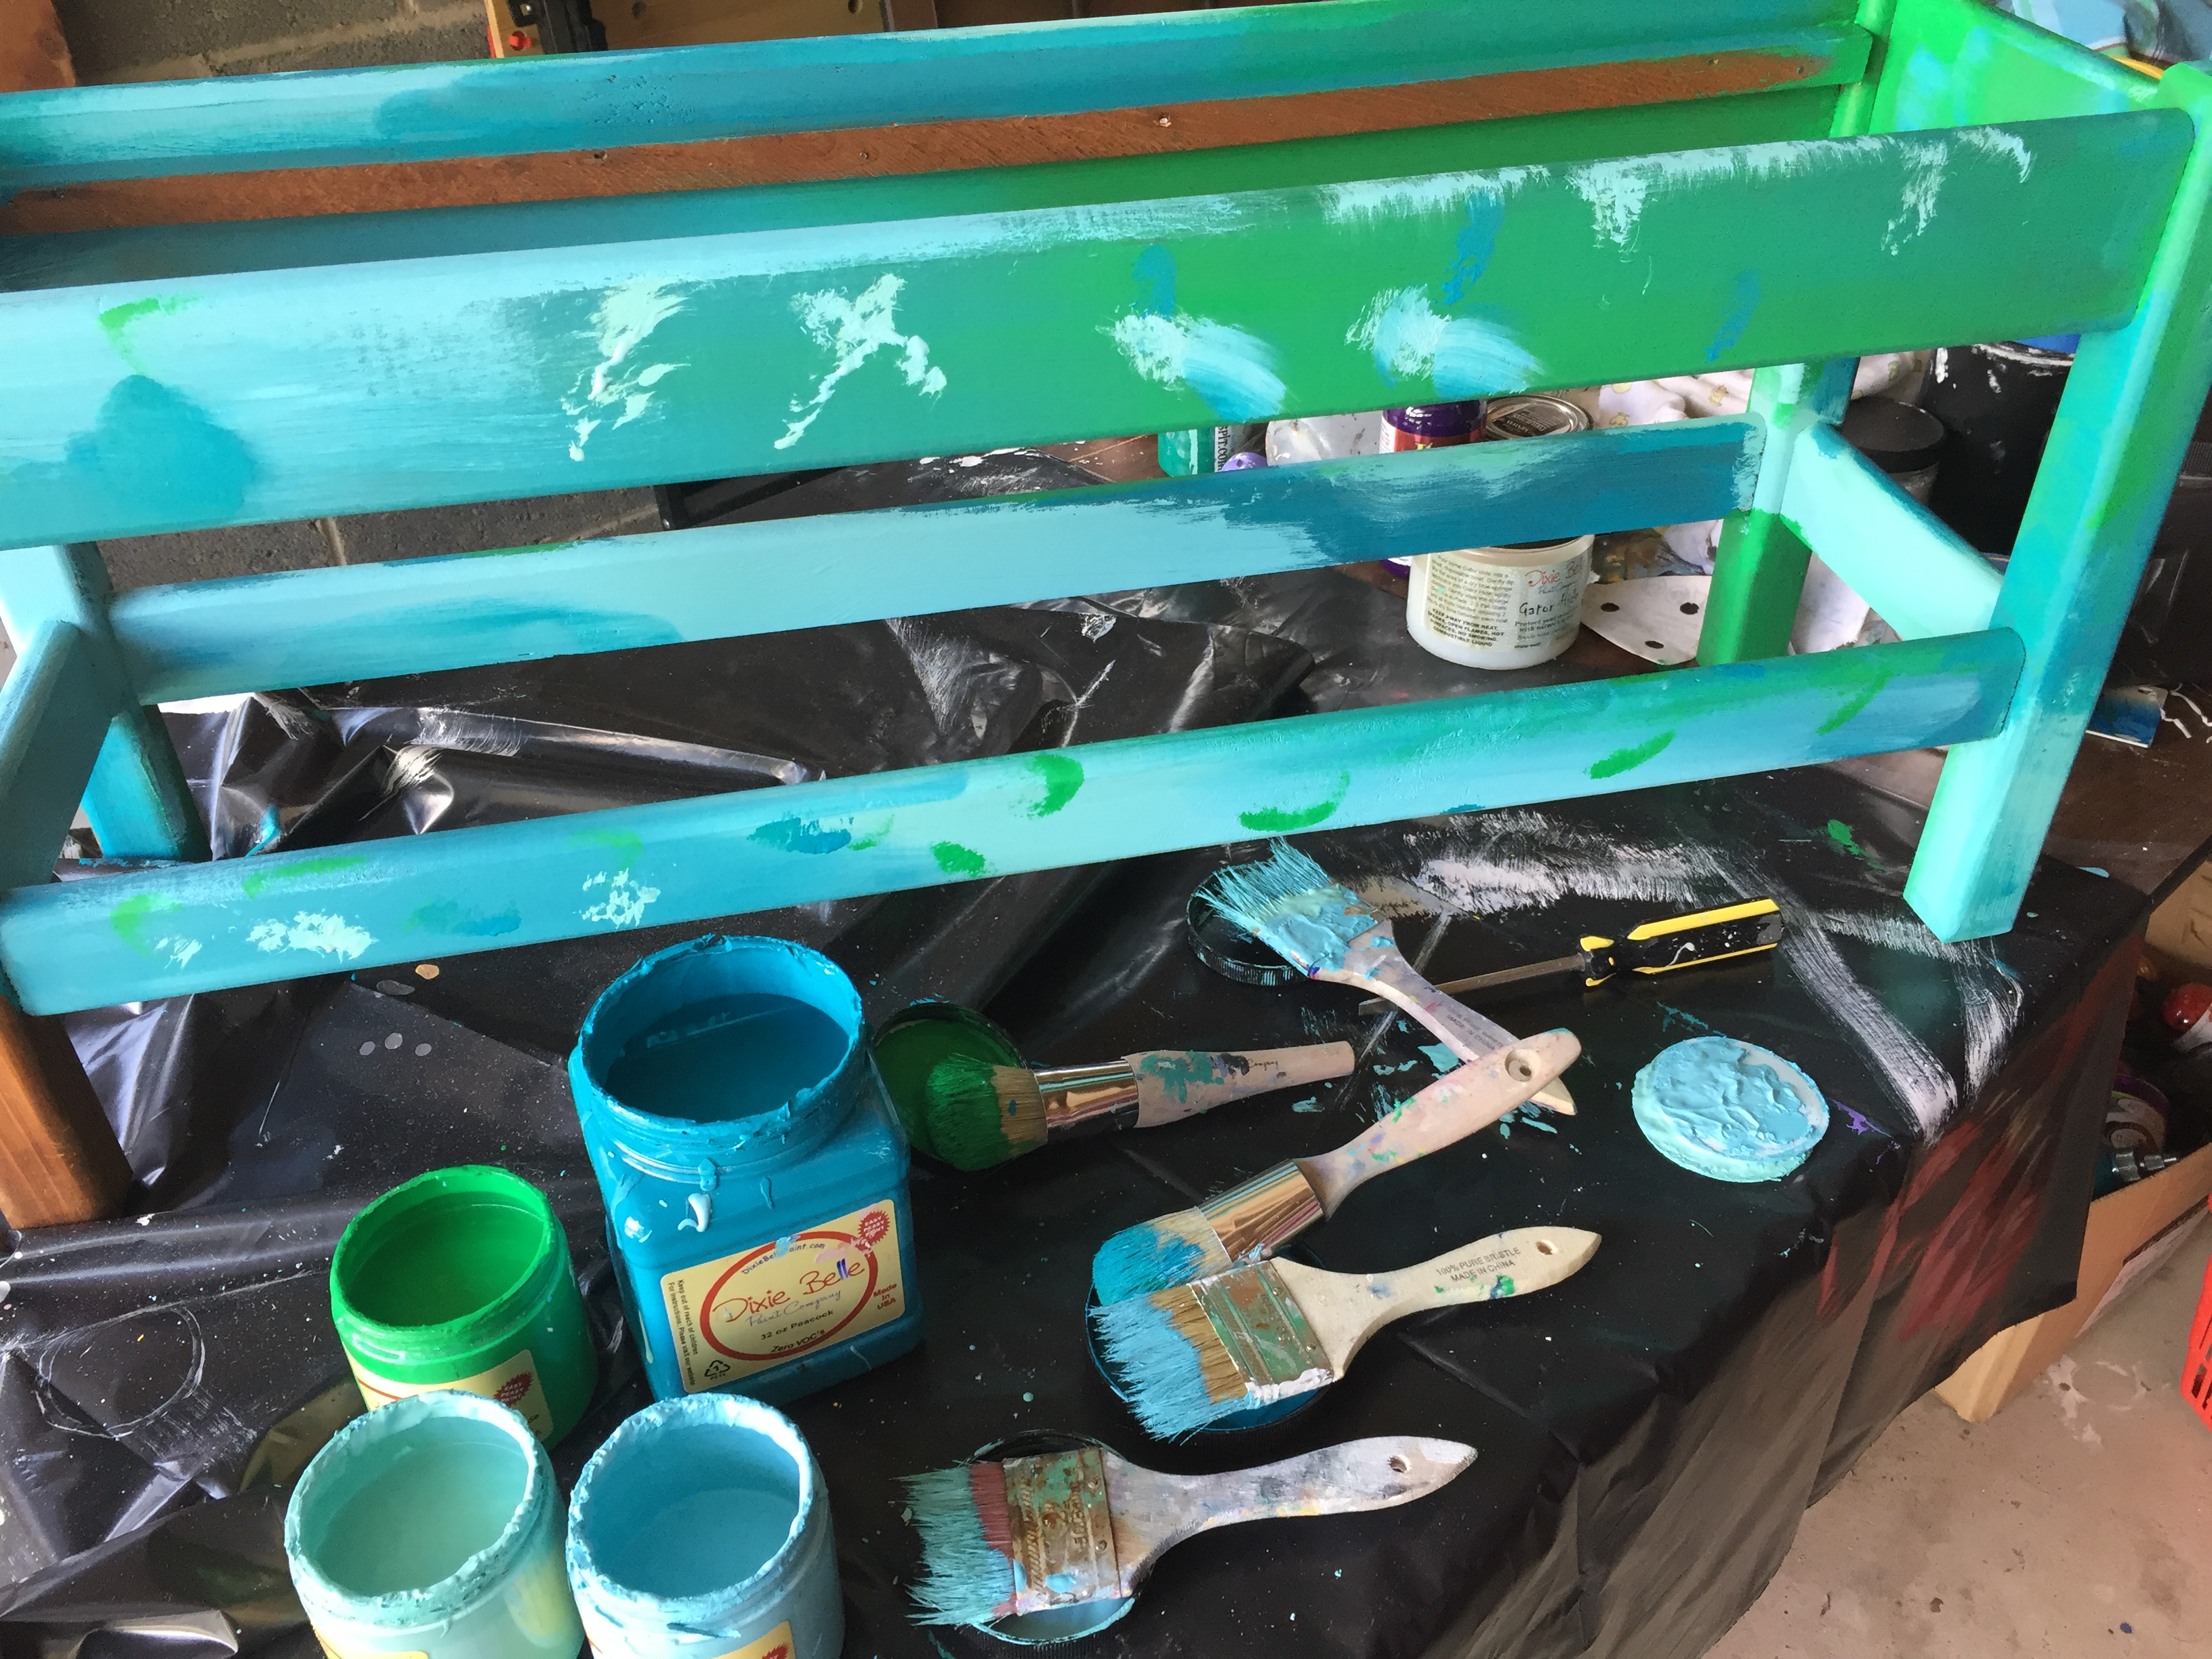 Courtney paints the bench several shades of blue as well as green